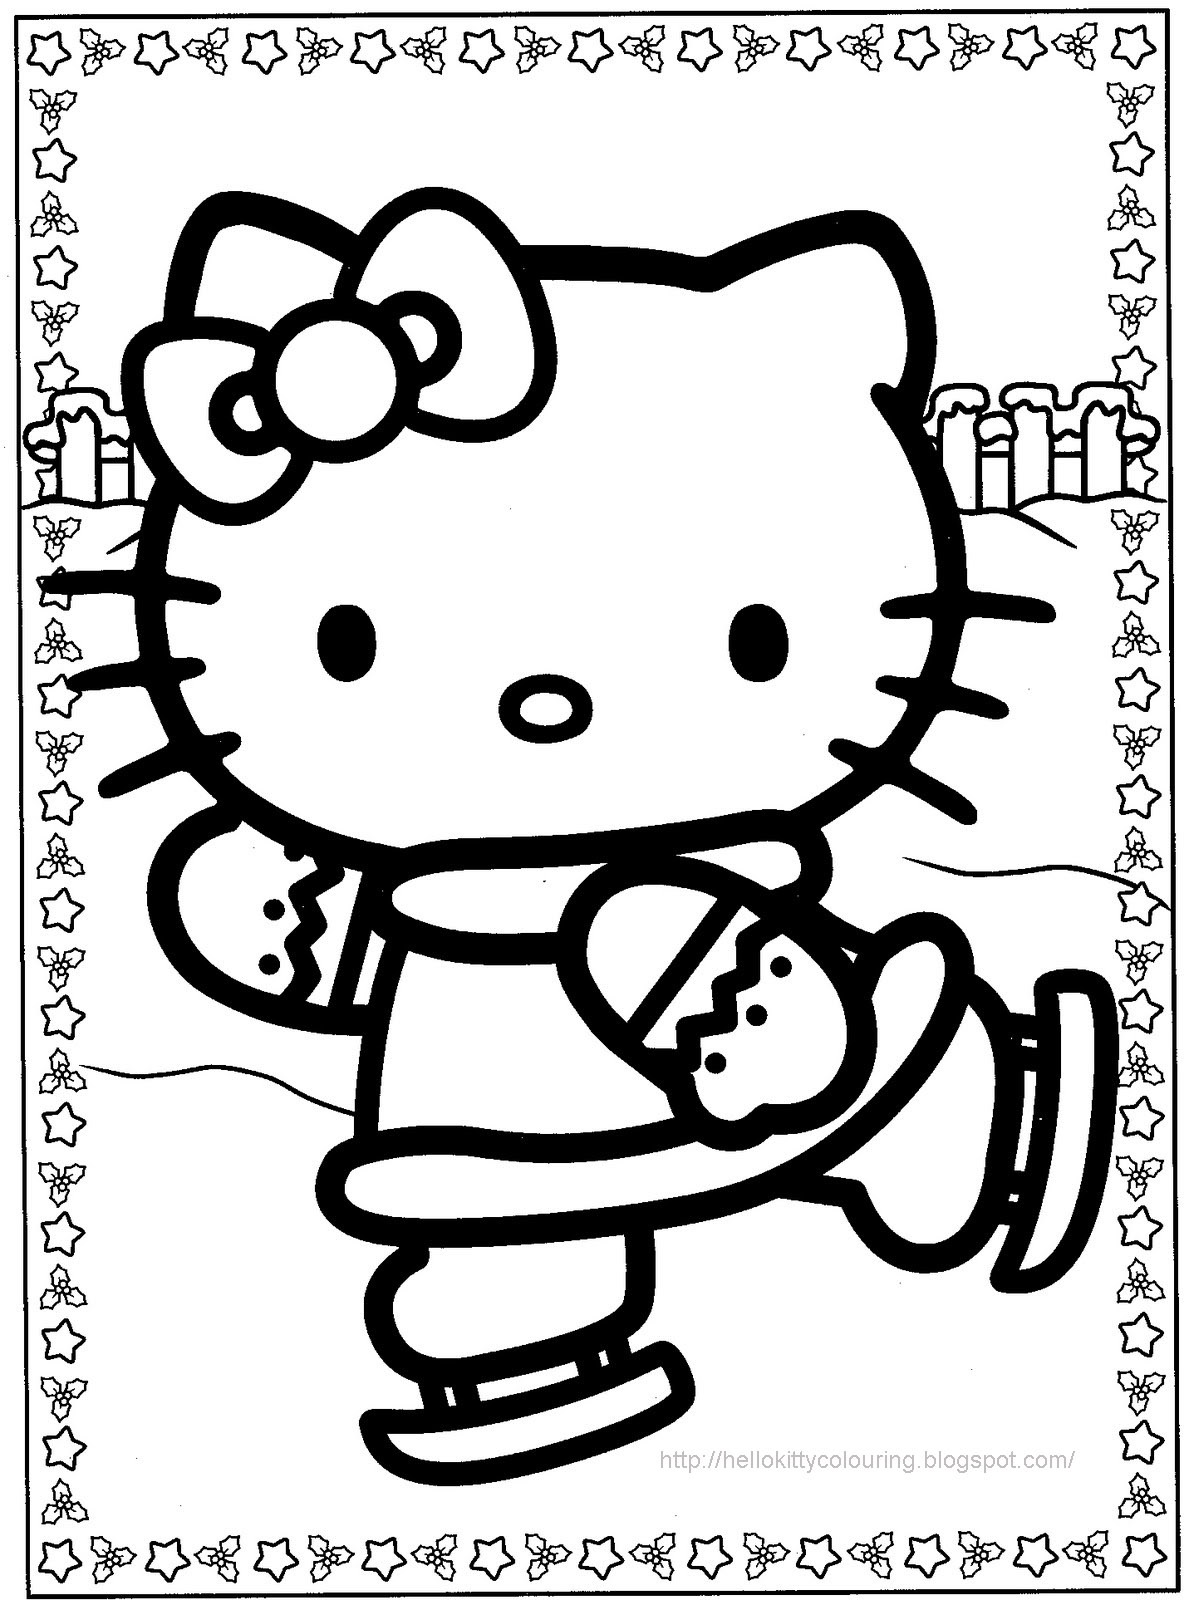 hello kitty holiday coloring pages hello kitty christmas coloring pages 1 hello kitty forever holiday pages coloring hello kitty